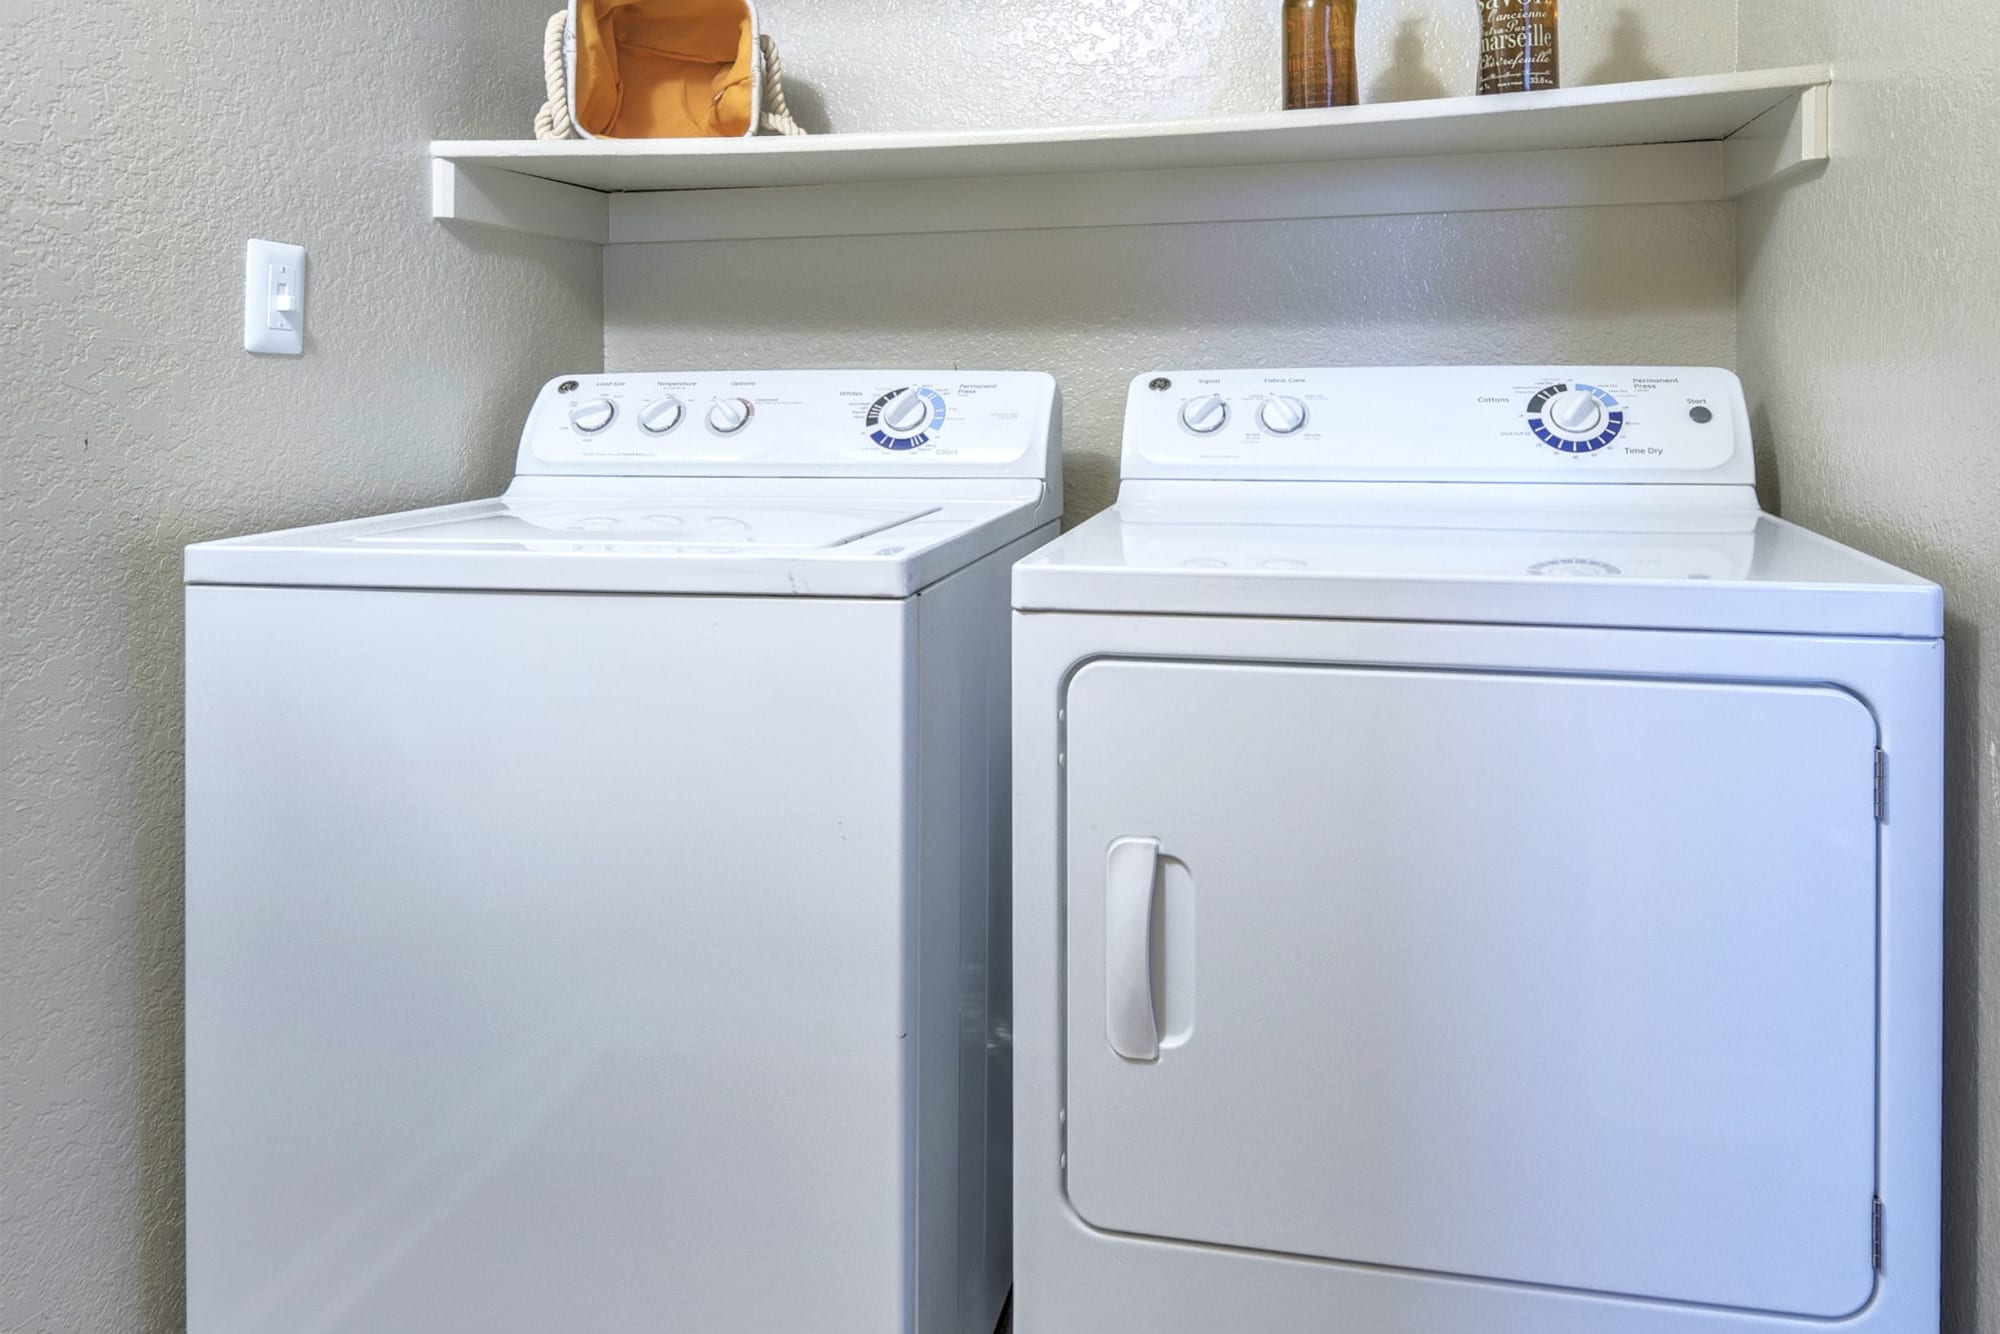 Full sized side by side washer and dryer at Arapahoe Club Apartments in Denver, Colorado